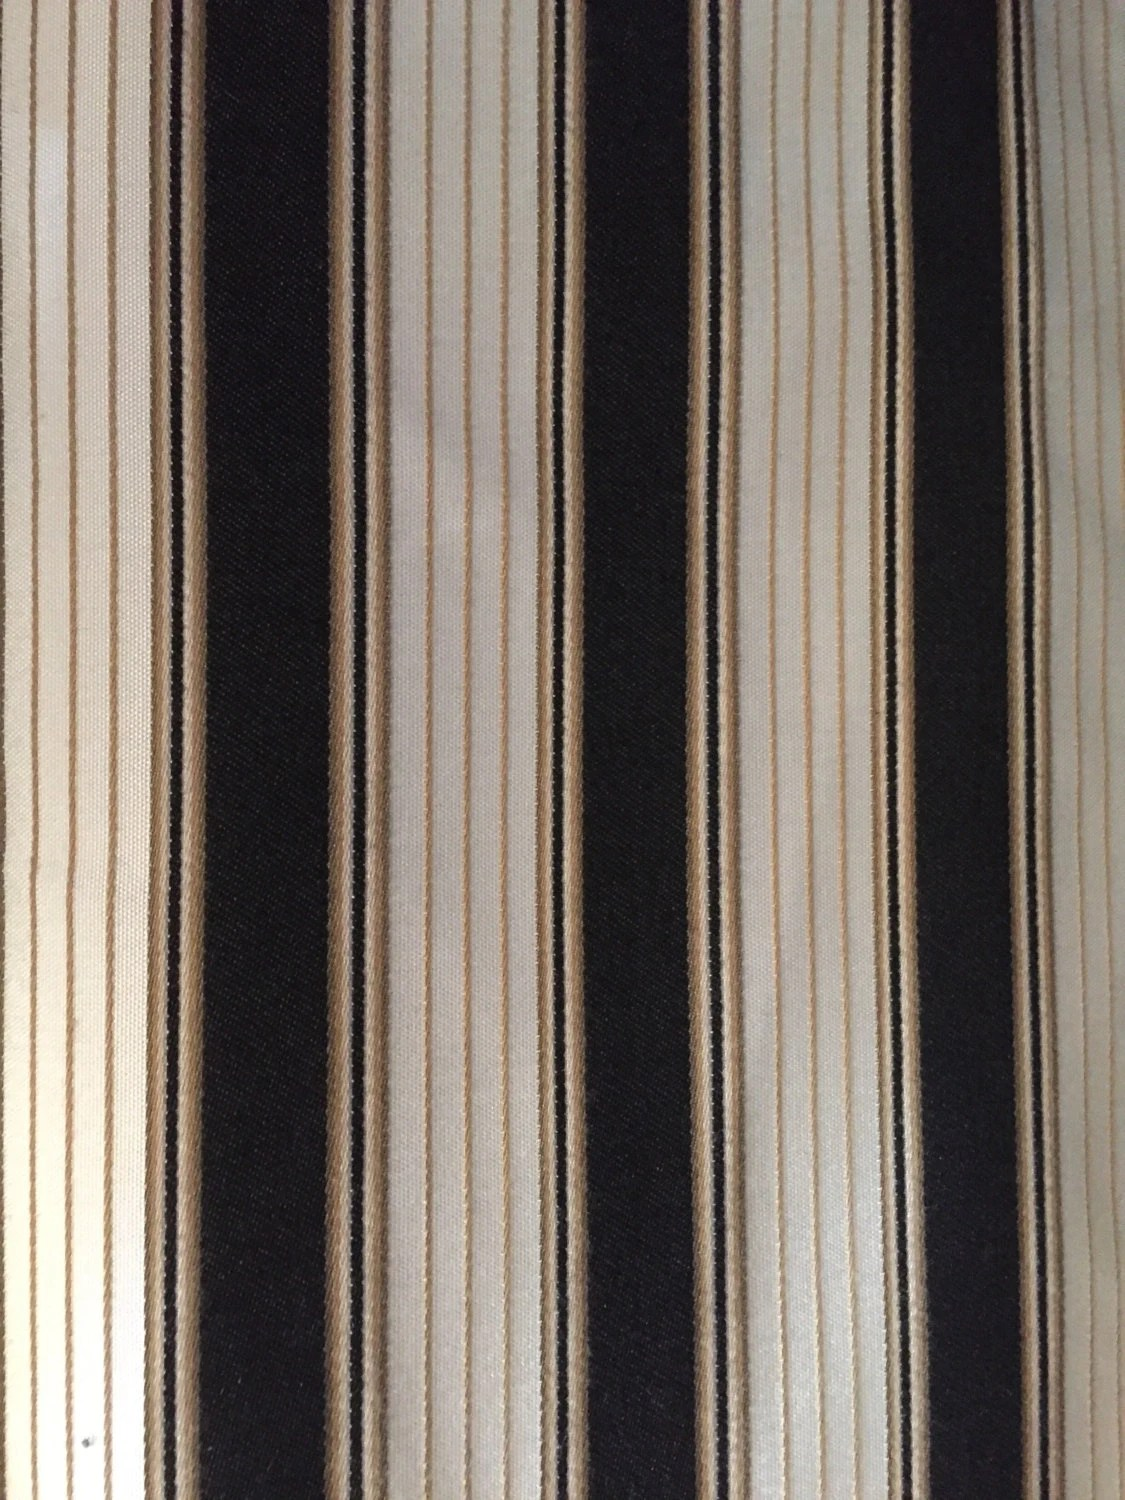 kitchen valences bosch black and tan stripe upholstery fabric by the yard